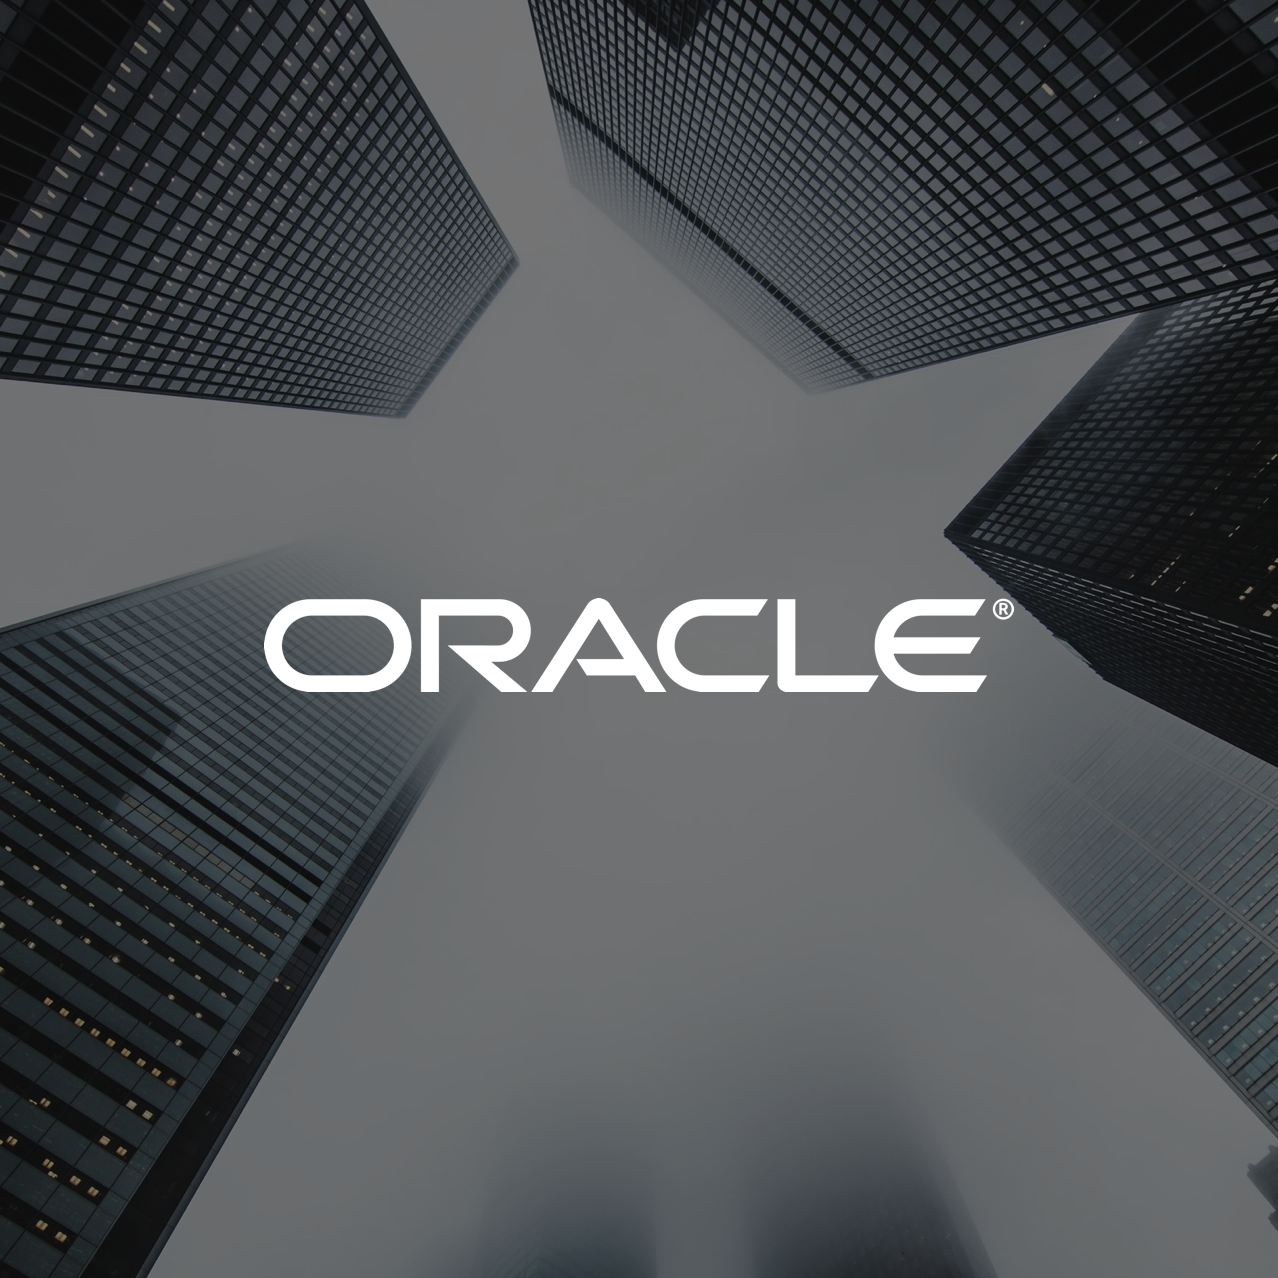 Rebranding Oracle for Marketers Globally